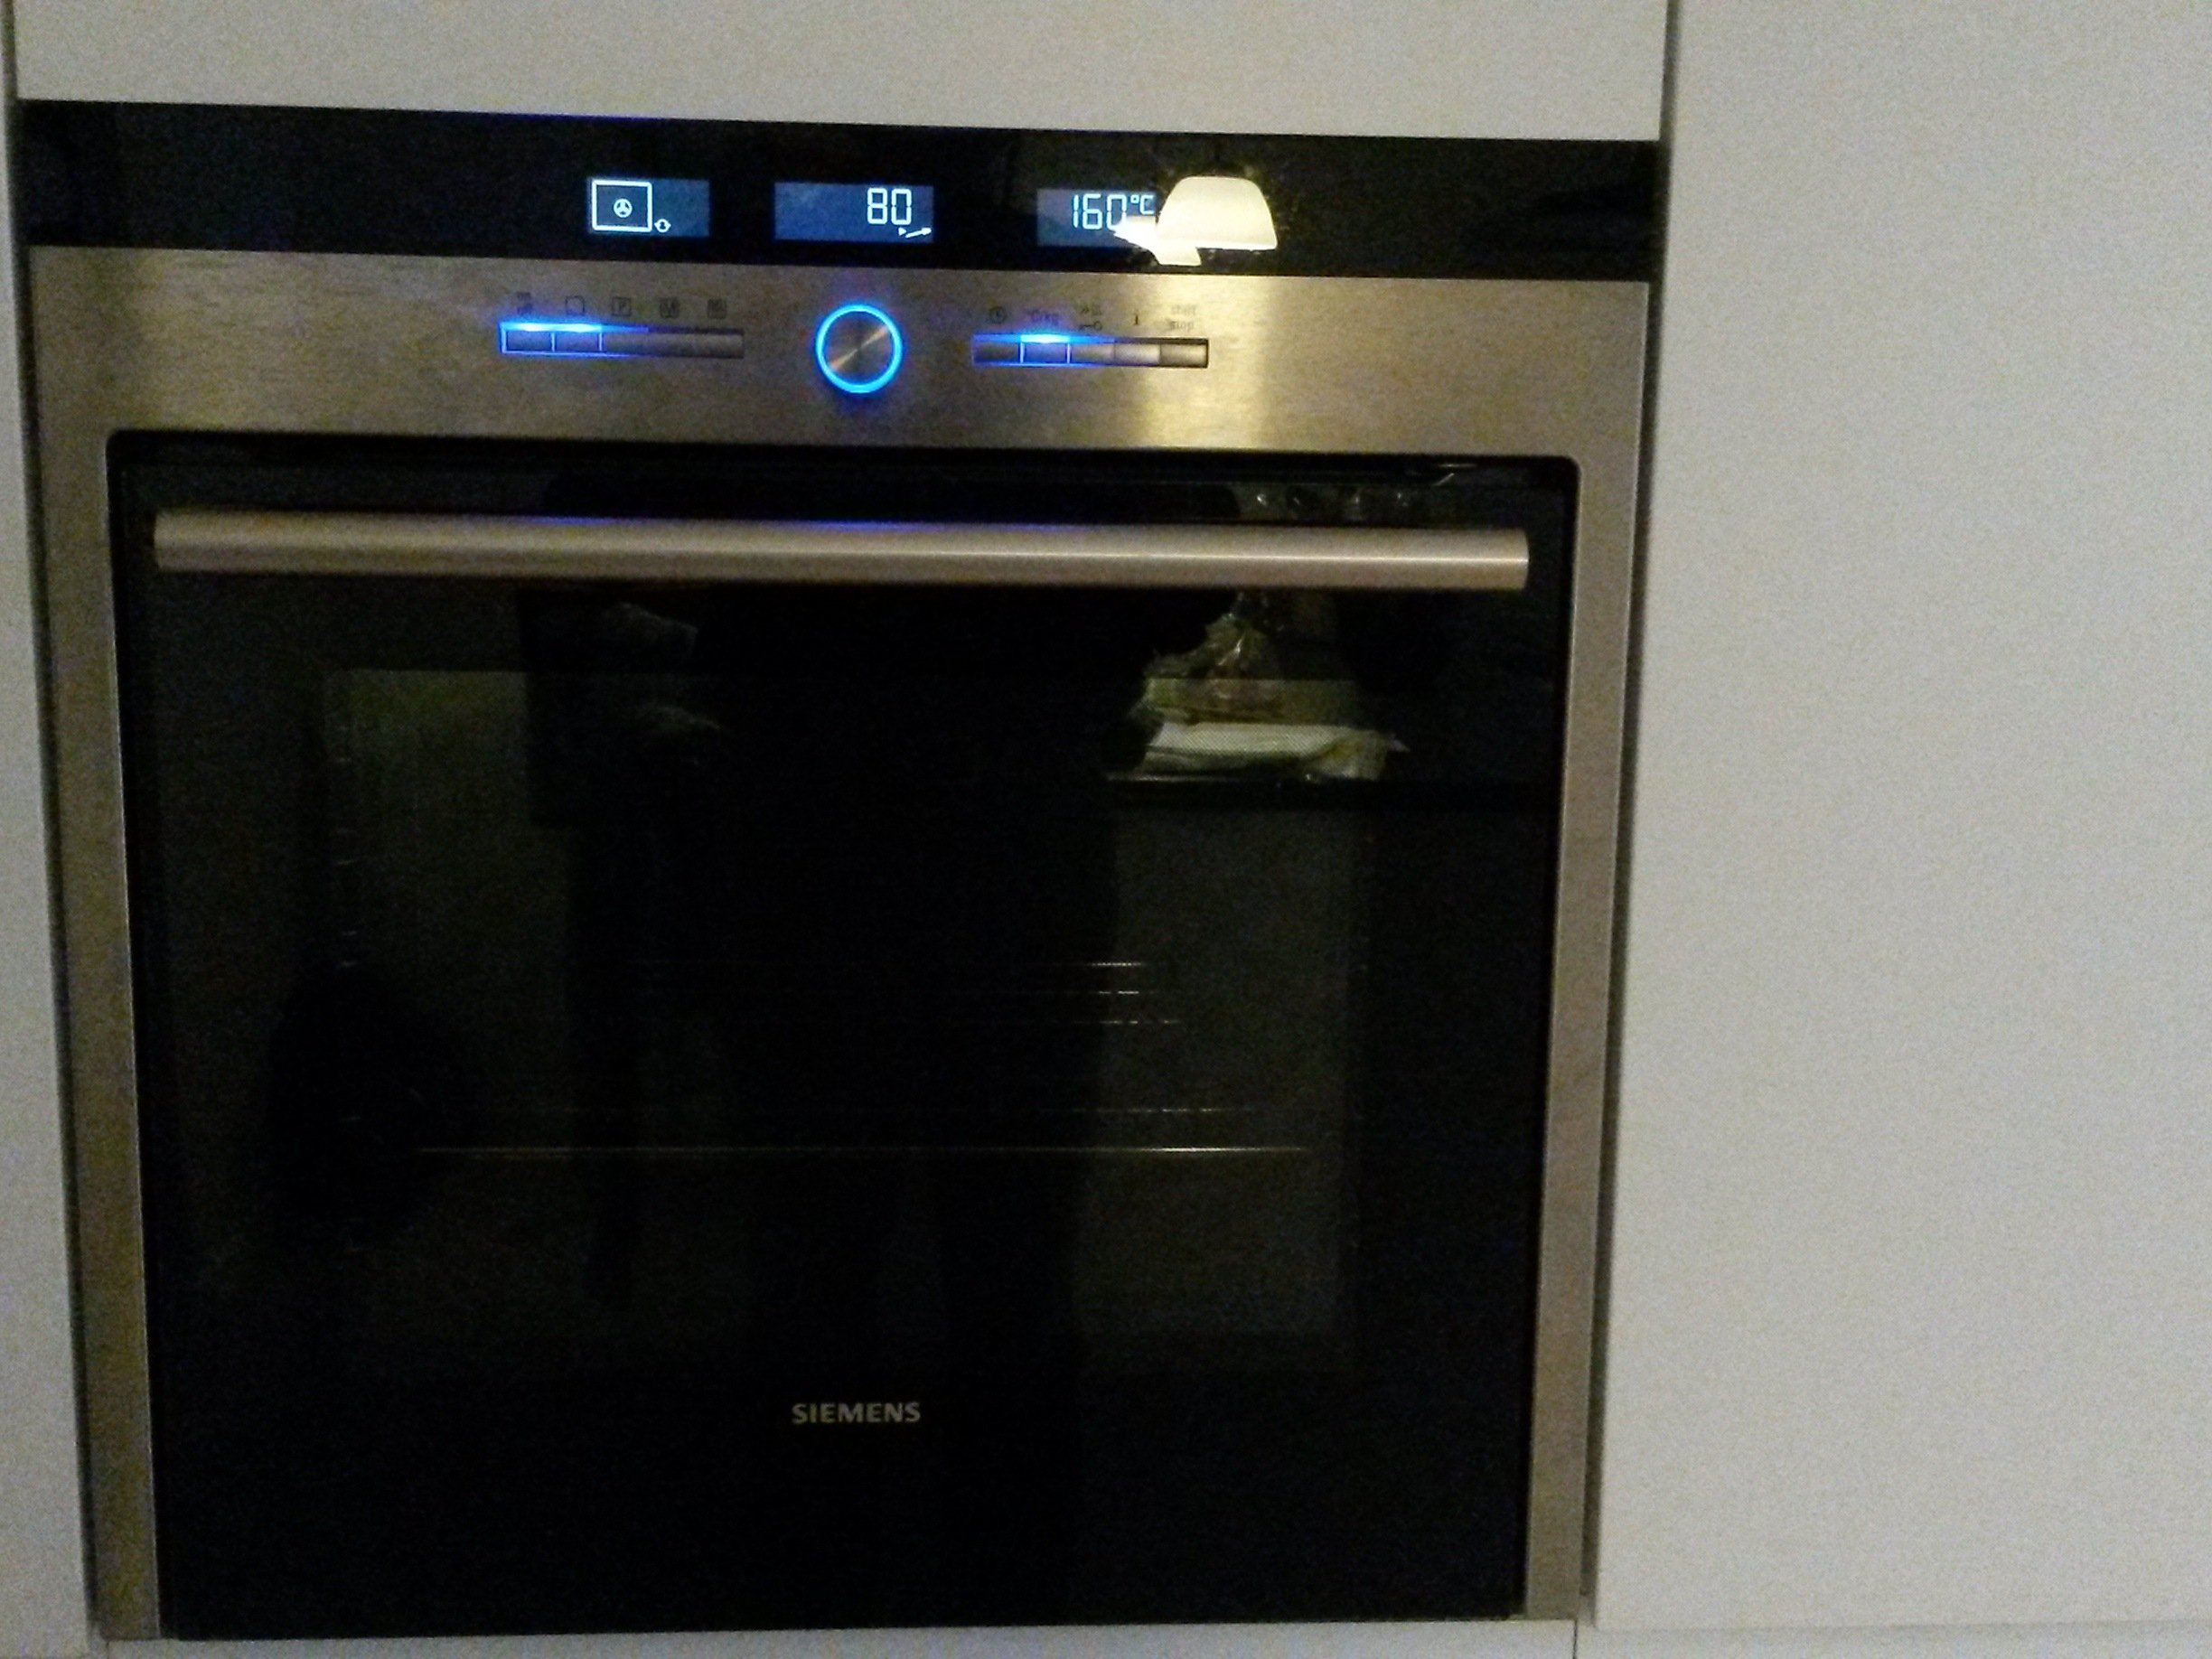 Siemens Oven Hb76a1560 Troubleshooting